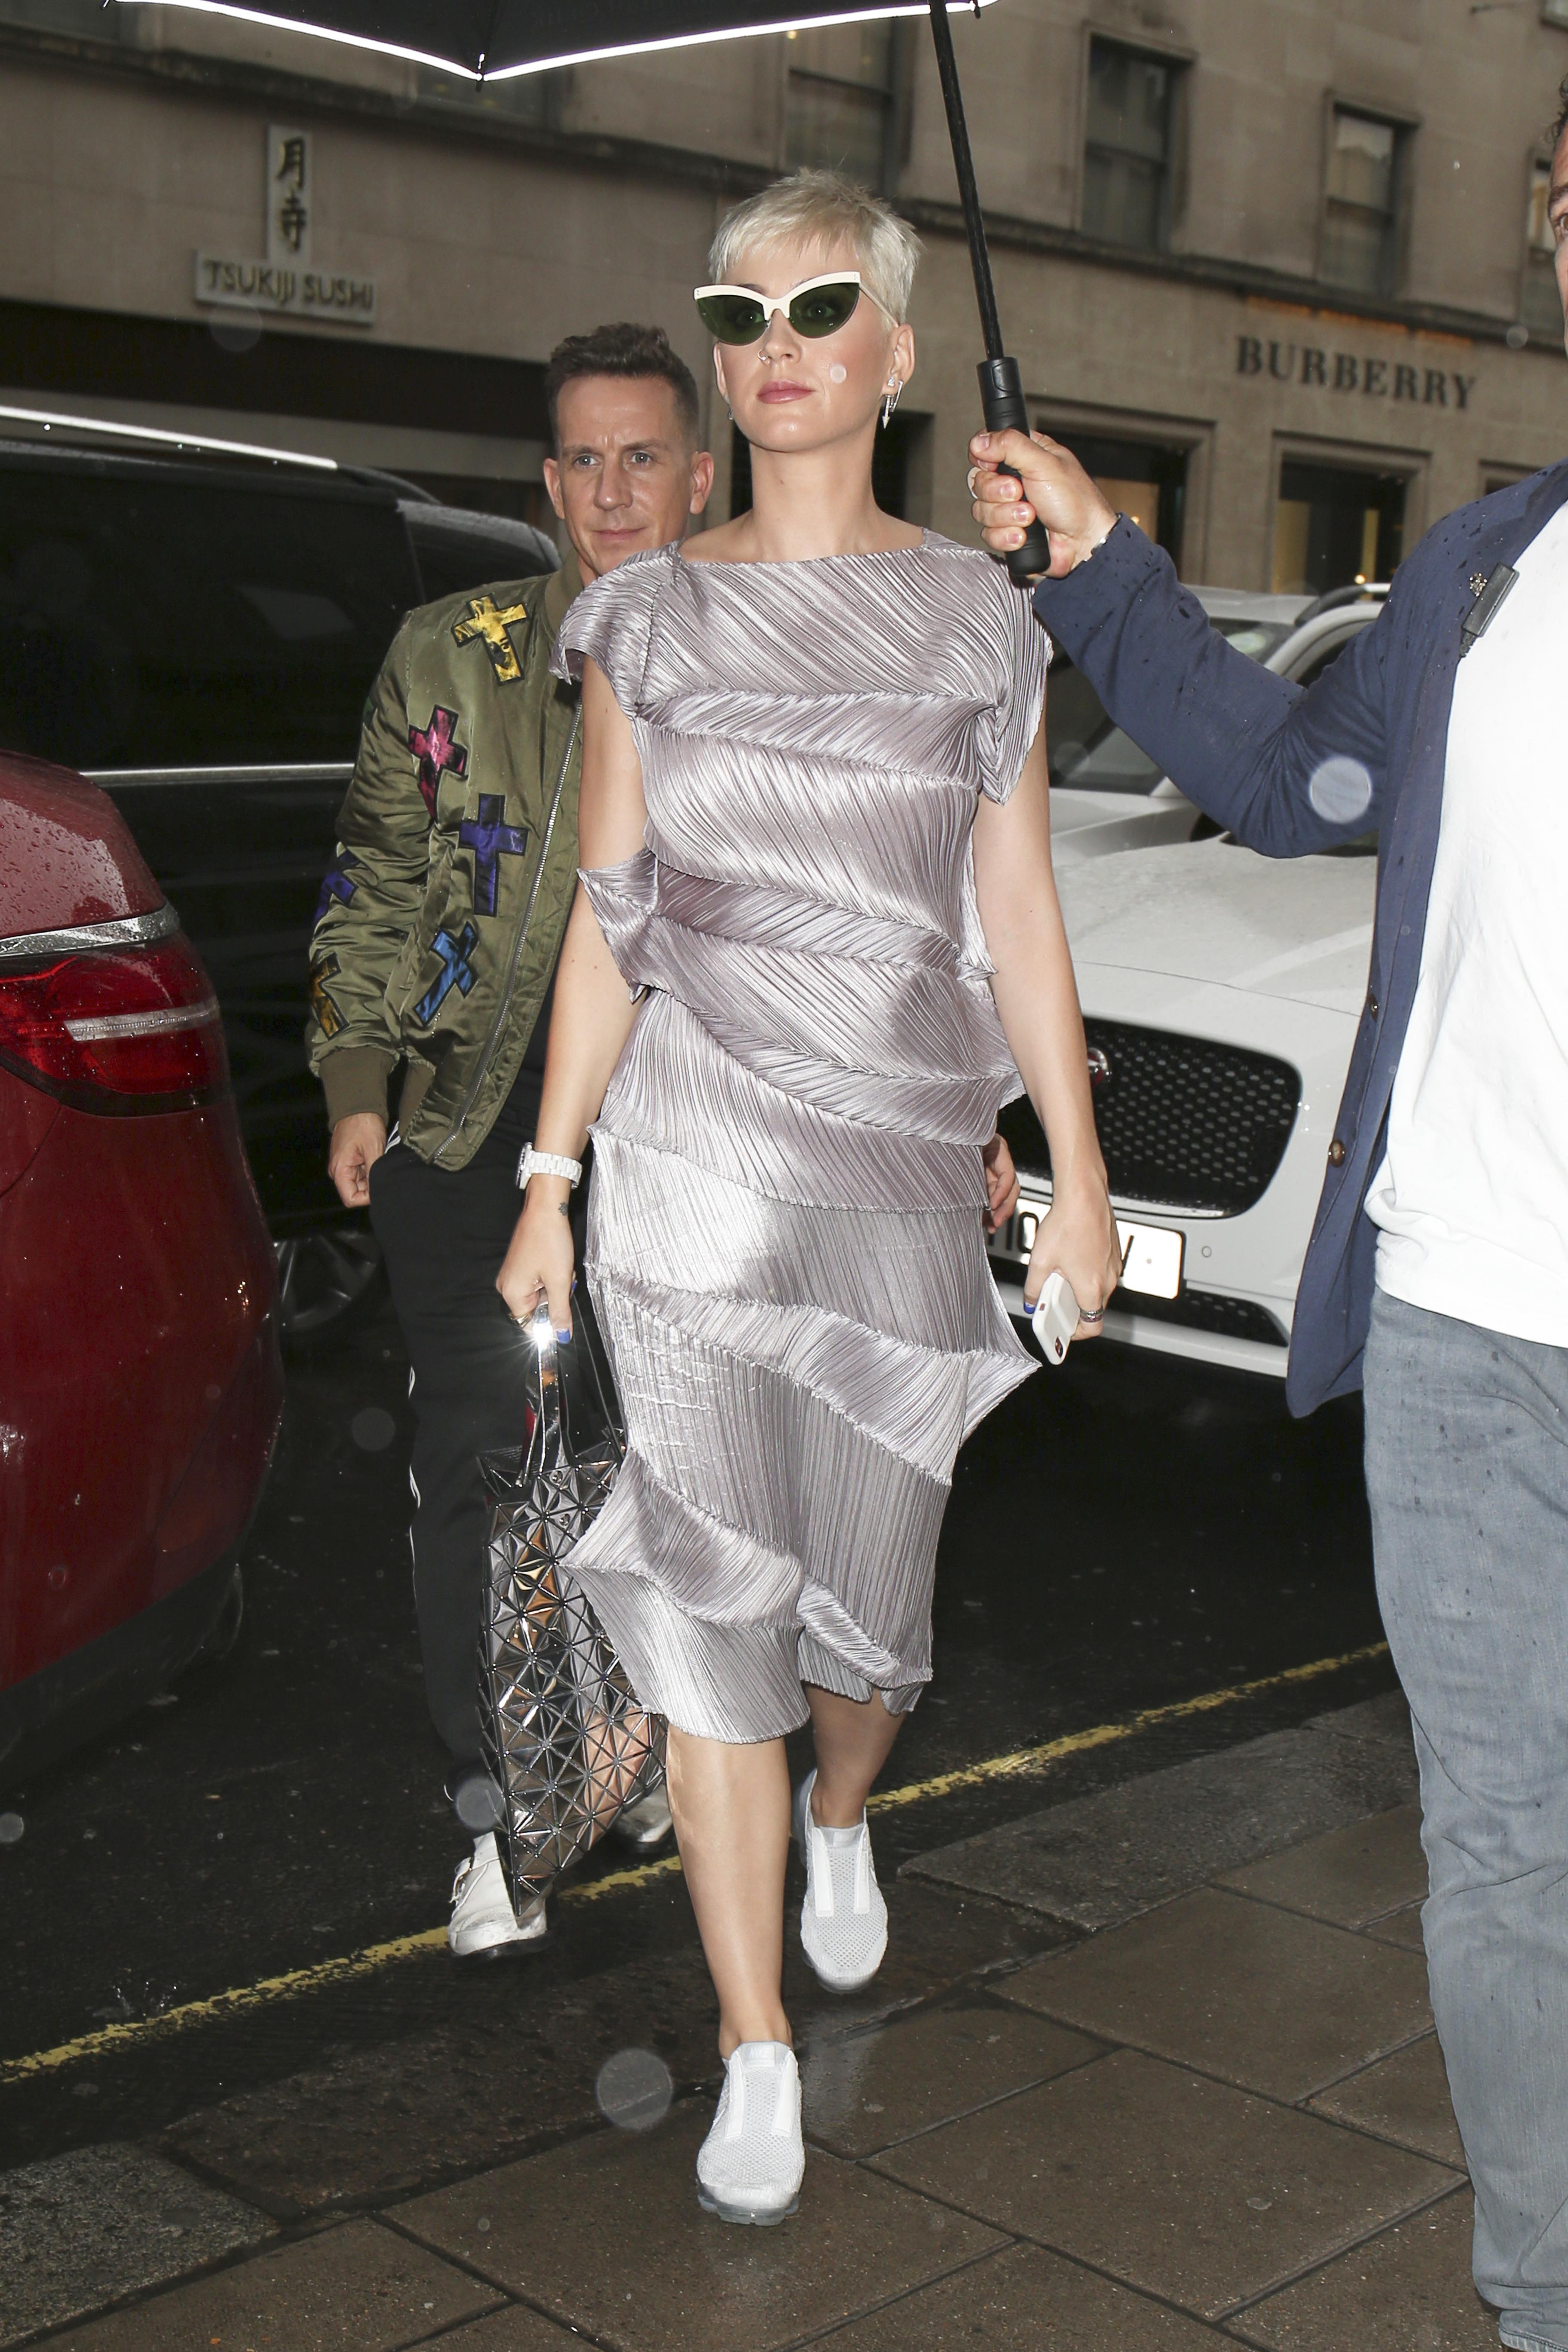 EXCLUSIVE Katy Perry Shopping in Rainy London after Visiting London's Science Museum